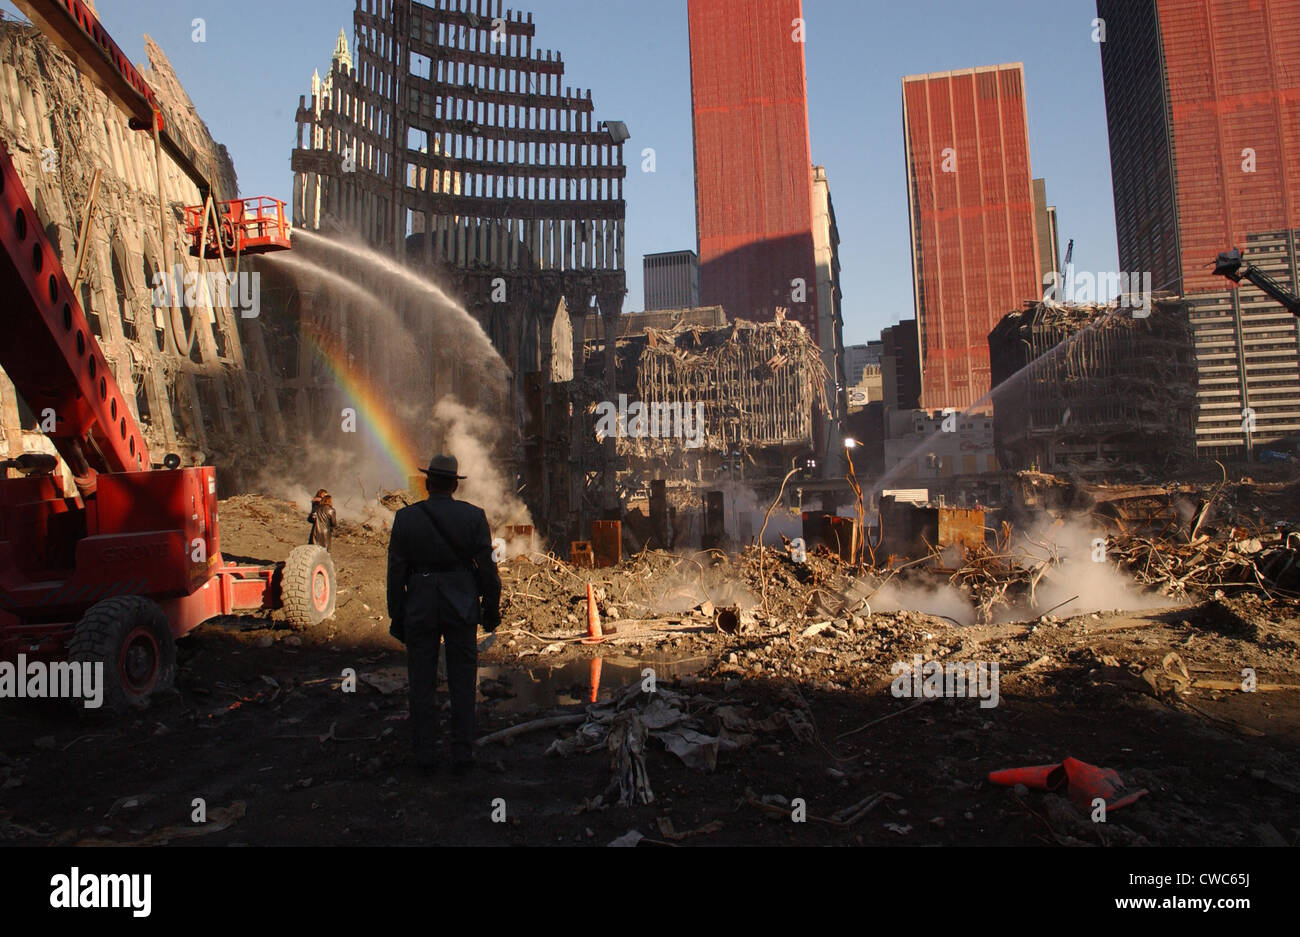 Workers spray the still smoldering rumble with water at the World Trade Center site six weeks after the 9-11 attacks. - Stock Image